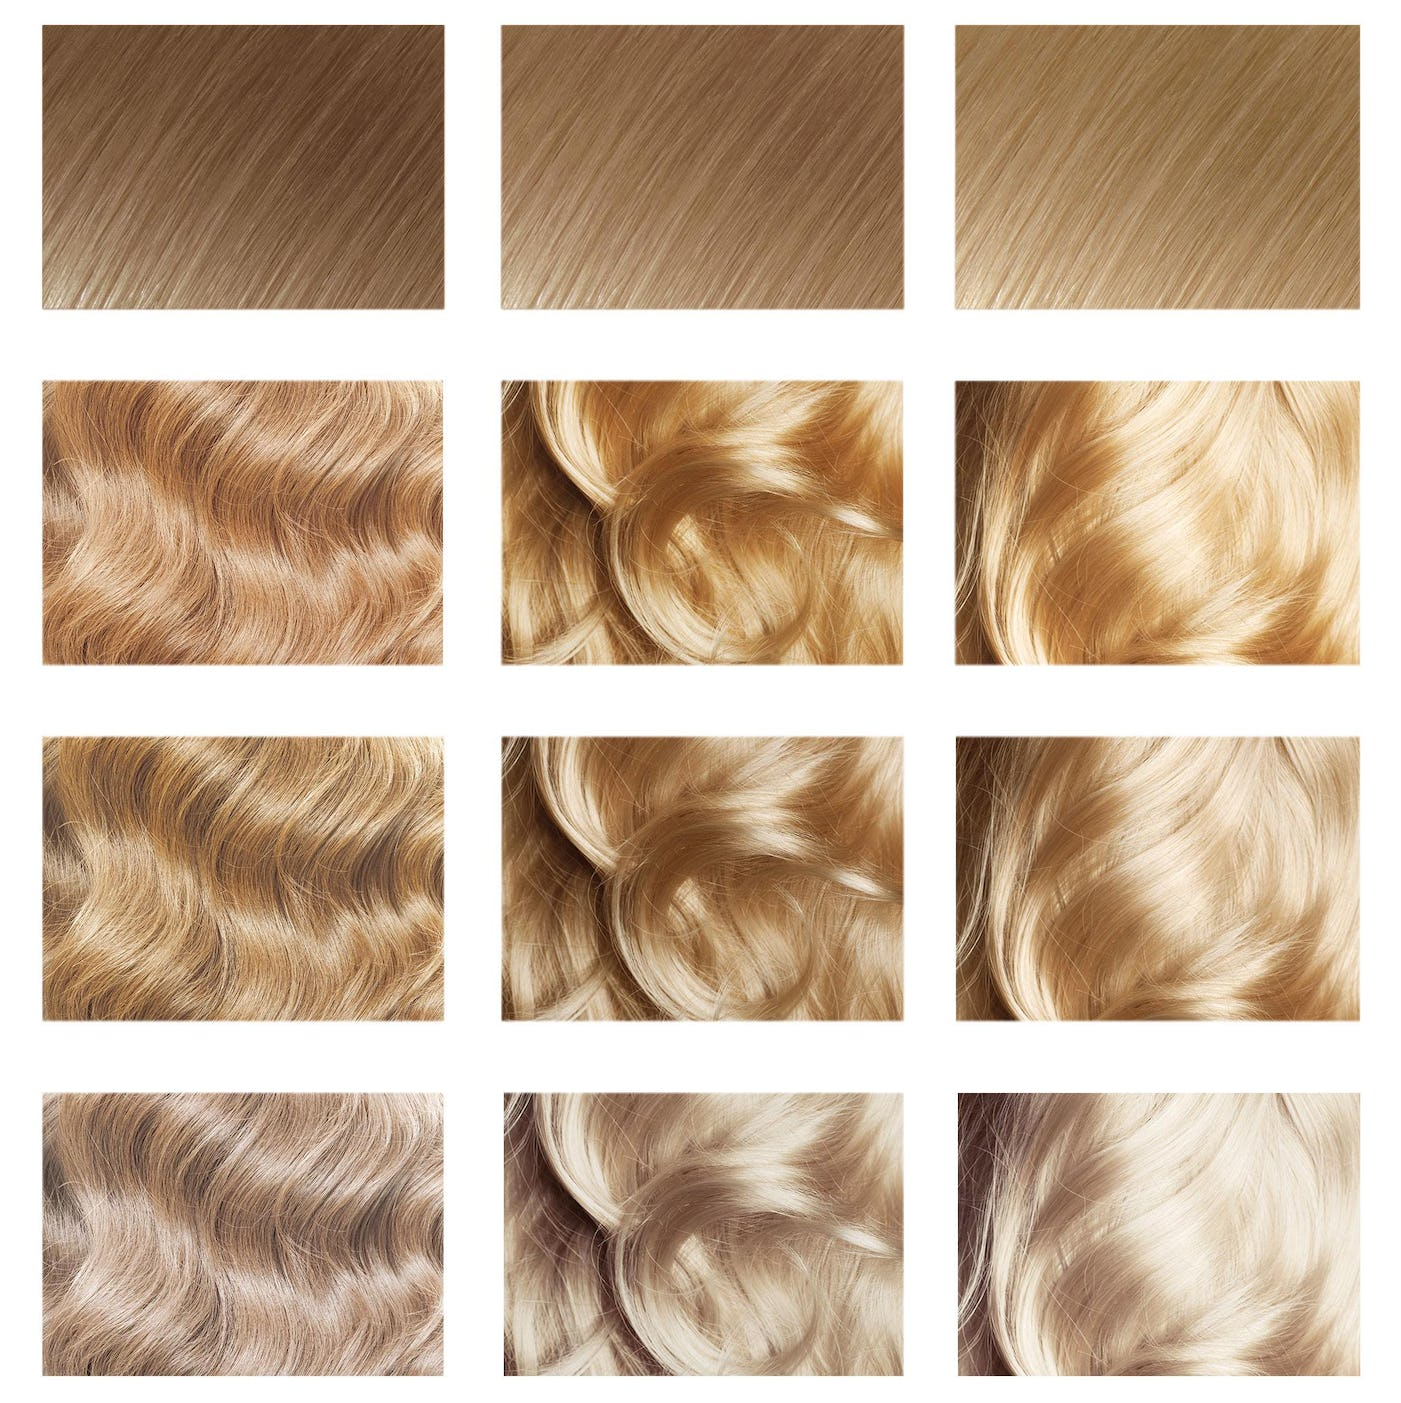 Ammonia-free High Lift shades lighten hair up to 3 levels ...